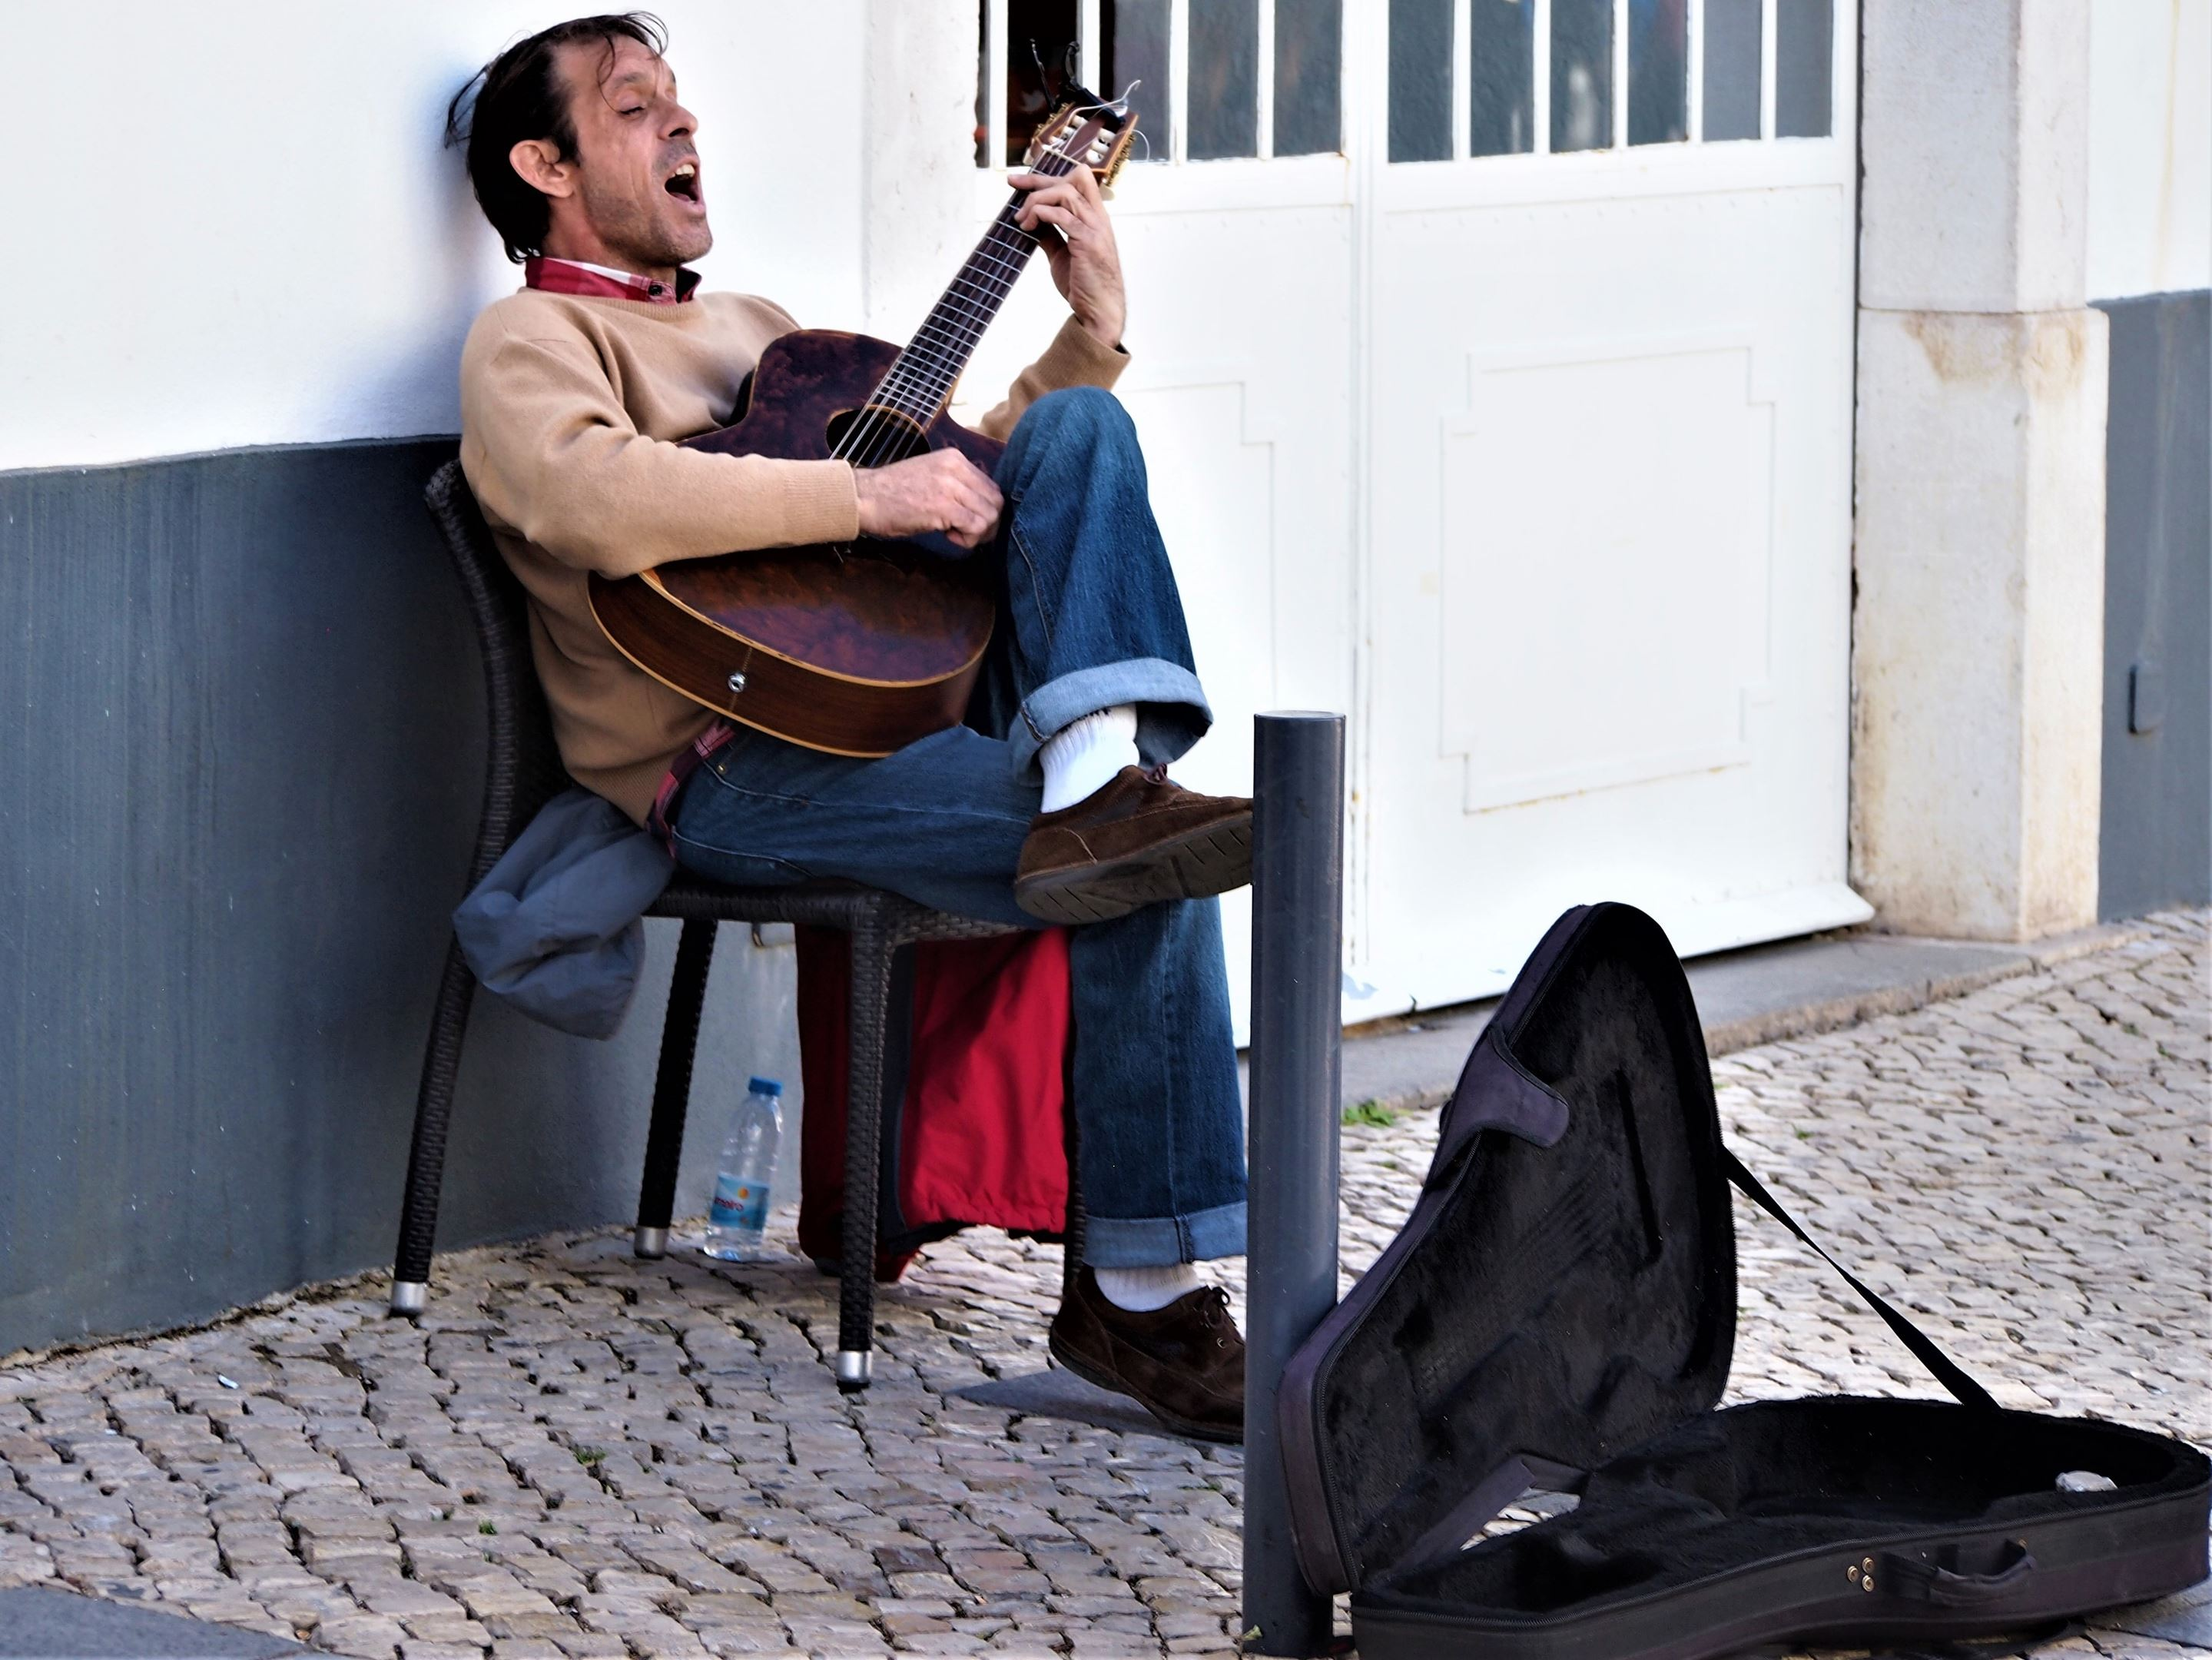 This guy was giving an incredible free concert to a small number of people opposite in a restaurant, fantastic singer - Lagos